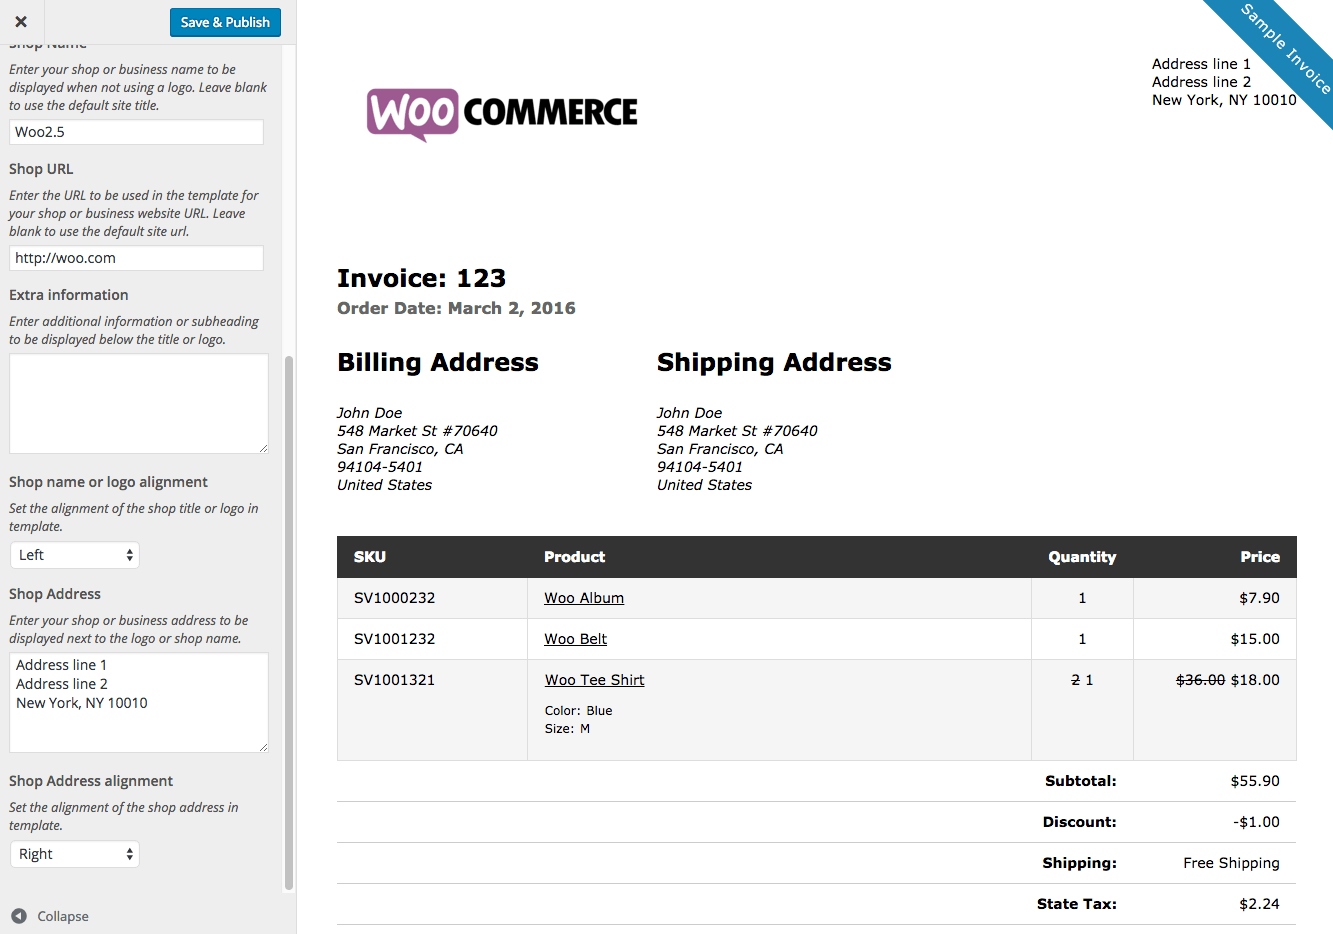 Ebitus  Ravishing Woocommerce Print Invoices Amp Packing Lists  Woocommerce Docs With Fair Woocommerce Print Invoices  Packing Lists Customizer With Alluring Personalised Duplicate Invoice Books Also Sample Invoice In Word Format In Addition Rental Invoice Template Free And Sample Invoices For Consulting Services As Well As Software For Billing And Invoicing Free Additionally Invoice Template Ato From Docswoocommercecom With Ebitus  Fair Woocommerce Print Invoices Amp Packing Lists  Woocommerce Docs With Alluring Woocommerce Print Invoices  Packing Lists Customizer And Ravishing Personalised Duplicate Invoice Books Also Sample Invoice In Word Format In Addition Rental Invoice Template Free From Docswoocommercecom